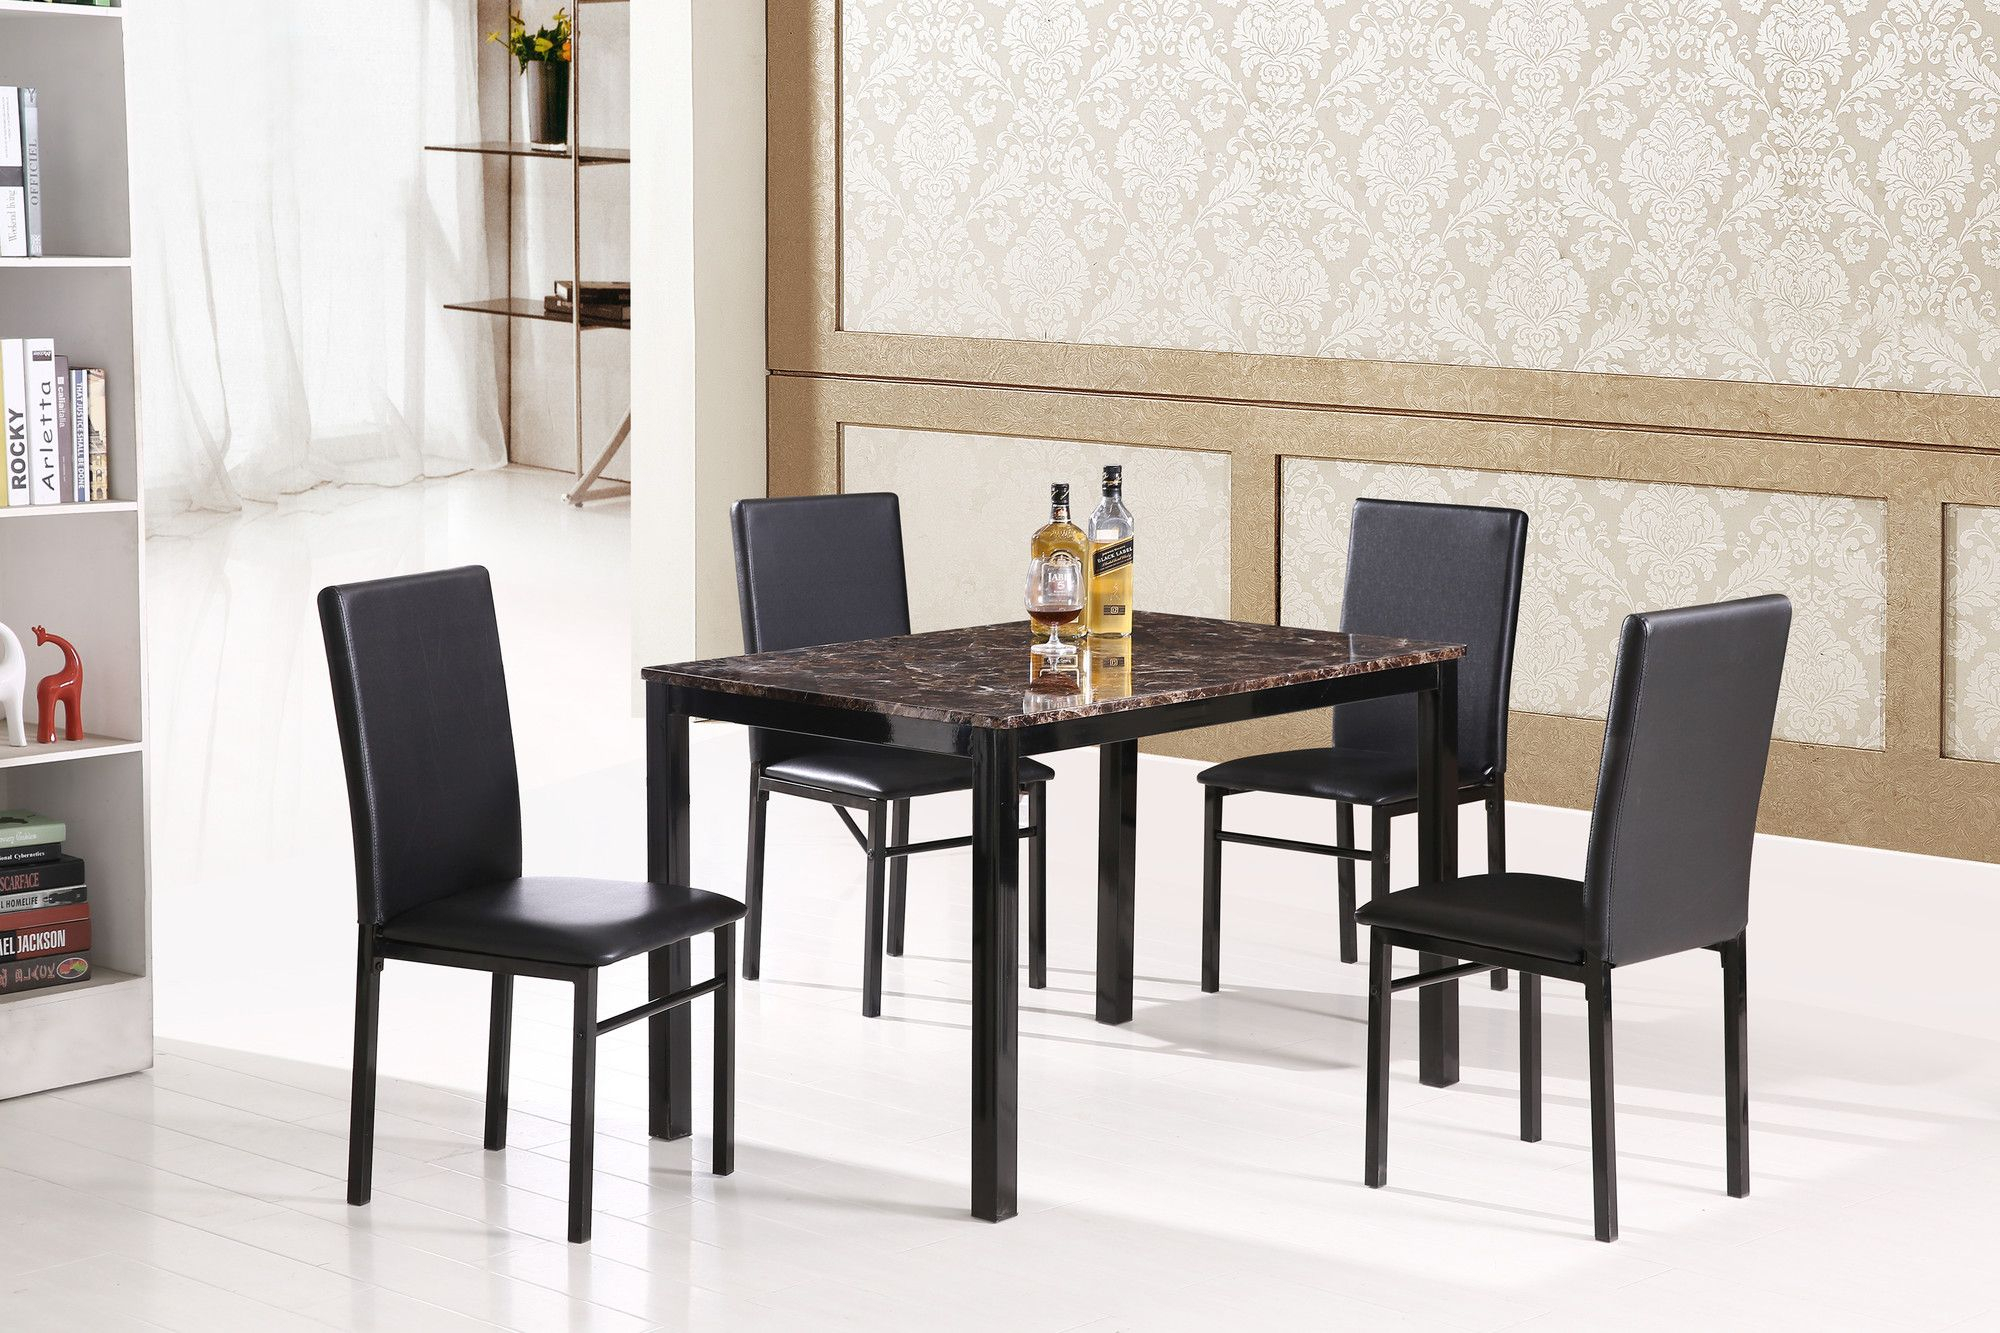 5 Piece Dining Set | Products | Marble Dining Table Set, Furniture In Most Recent Calla 5 Piece Dining Sets (Photo 5 of 20)